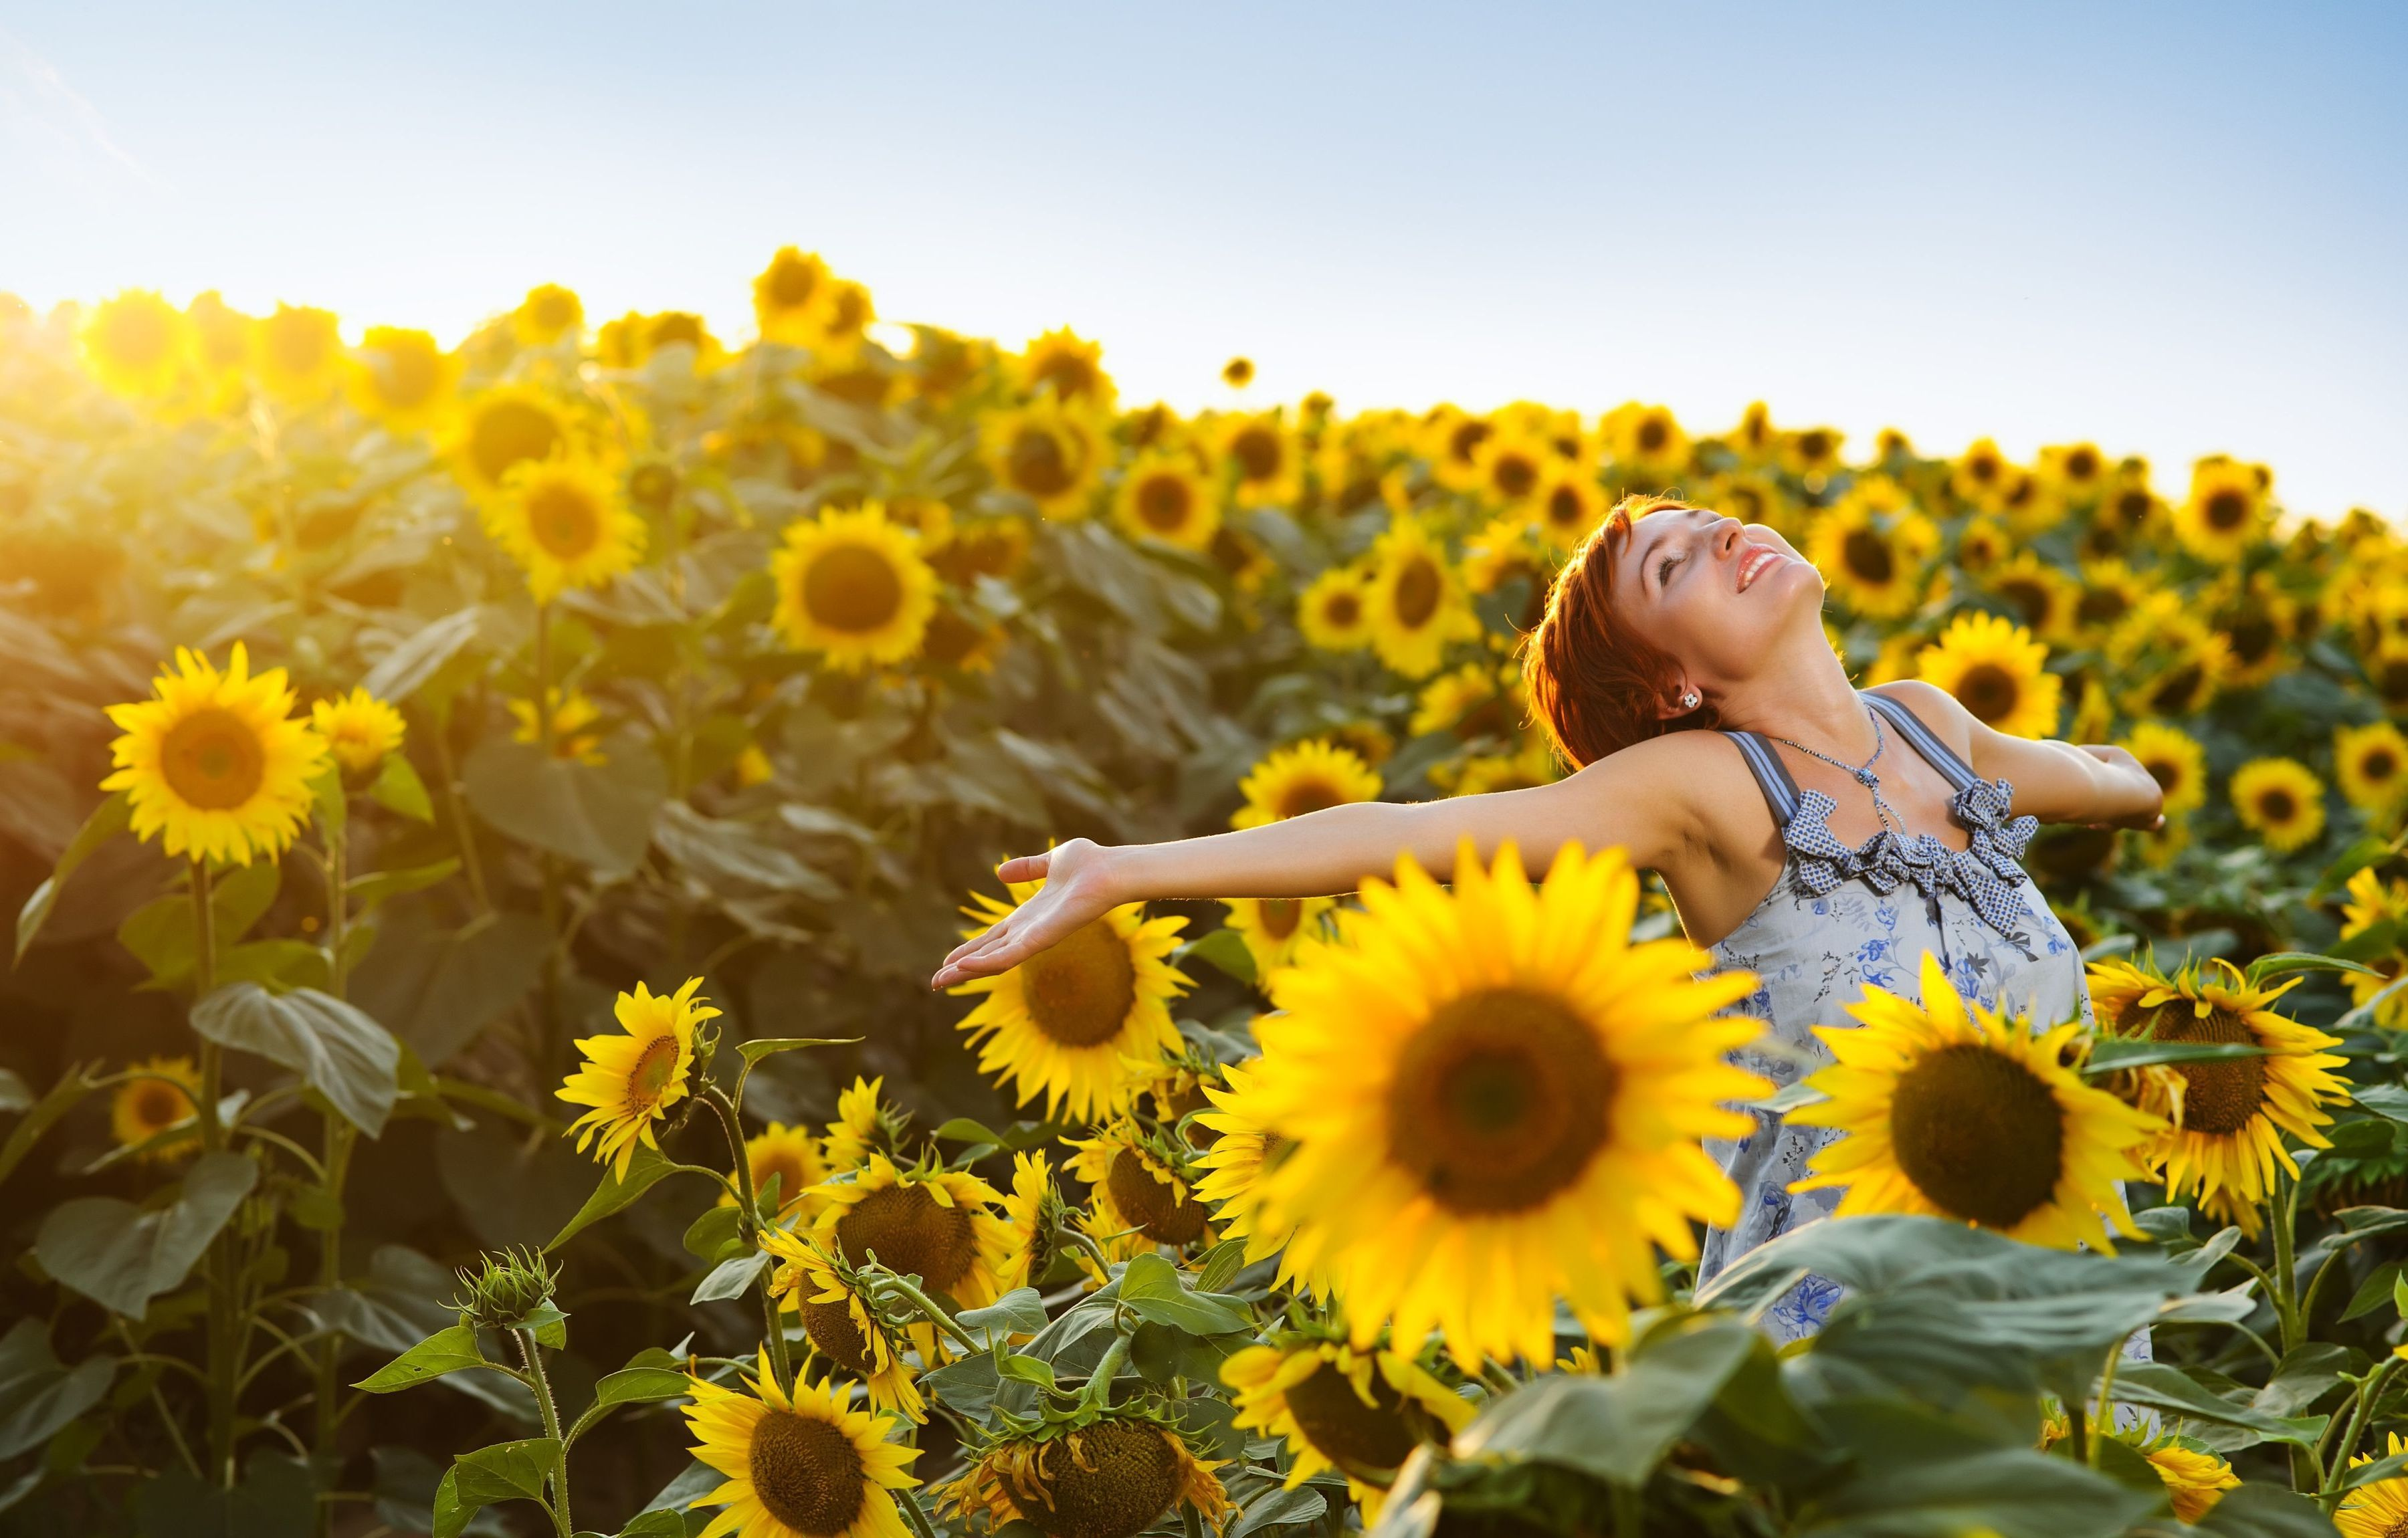 virgo, flowers, sunflowers, woman hapy, beauty, health, relationships